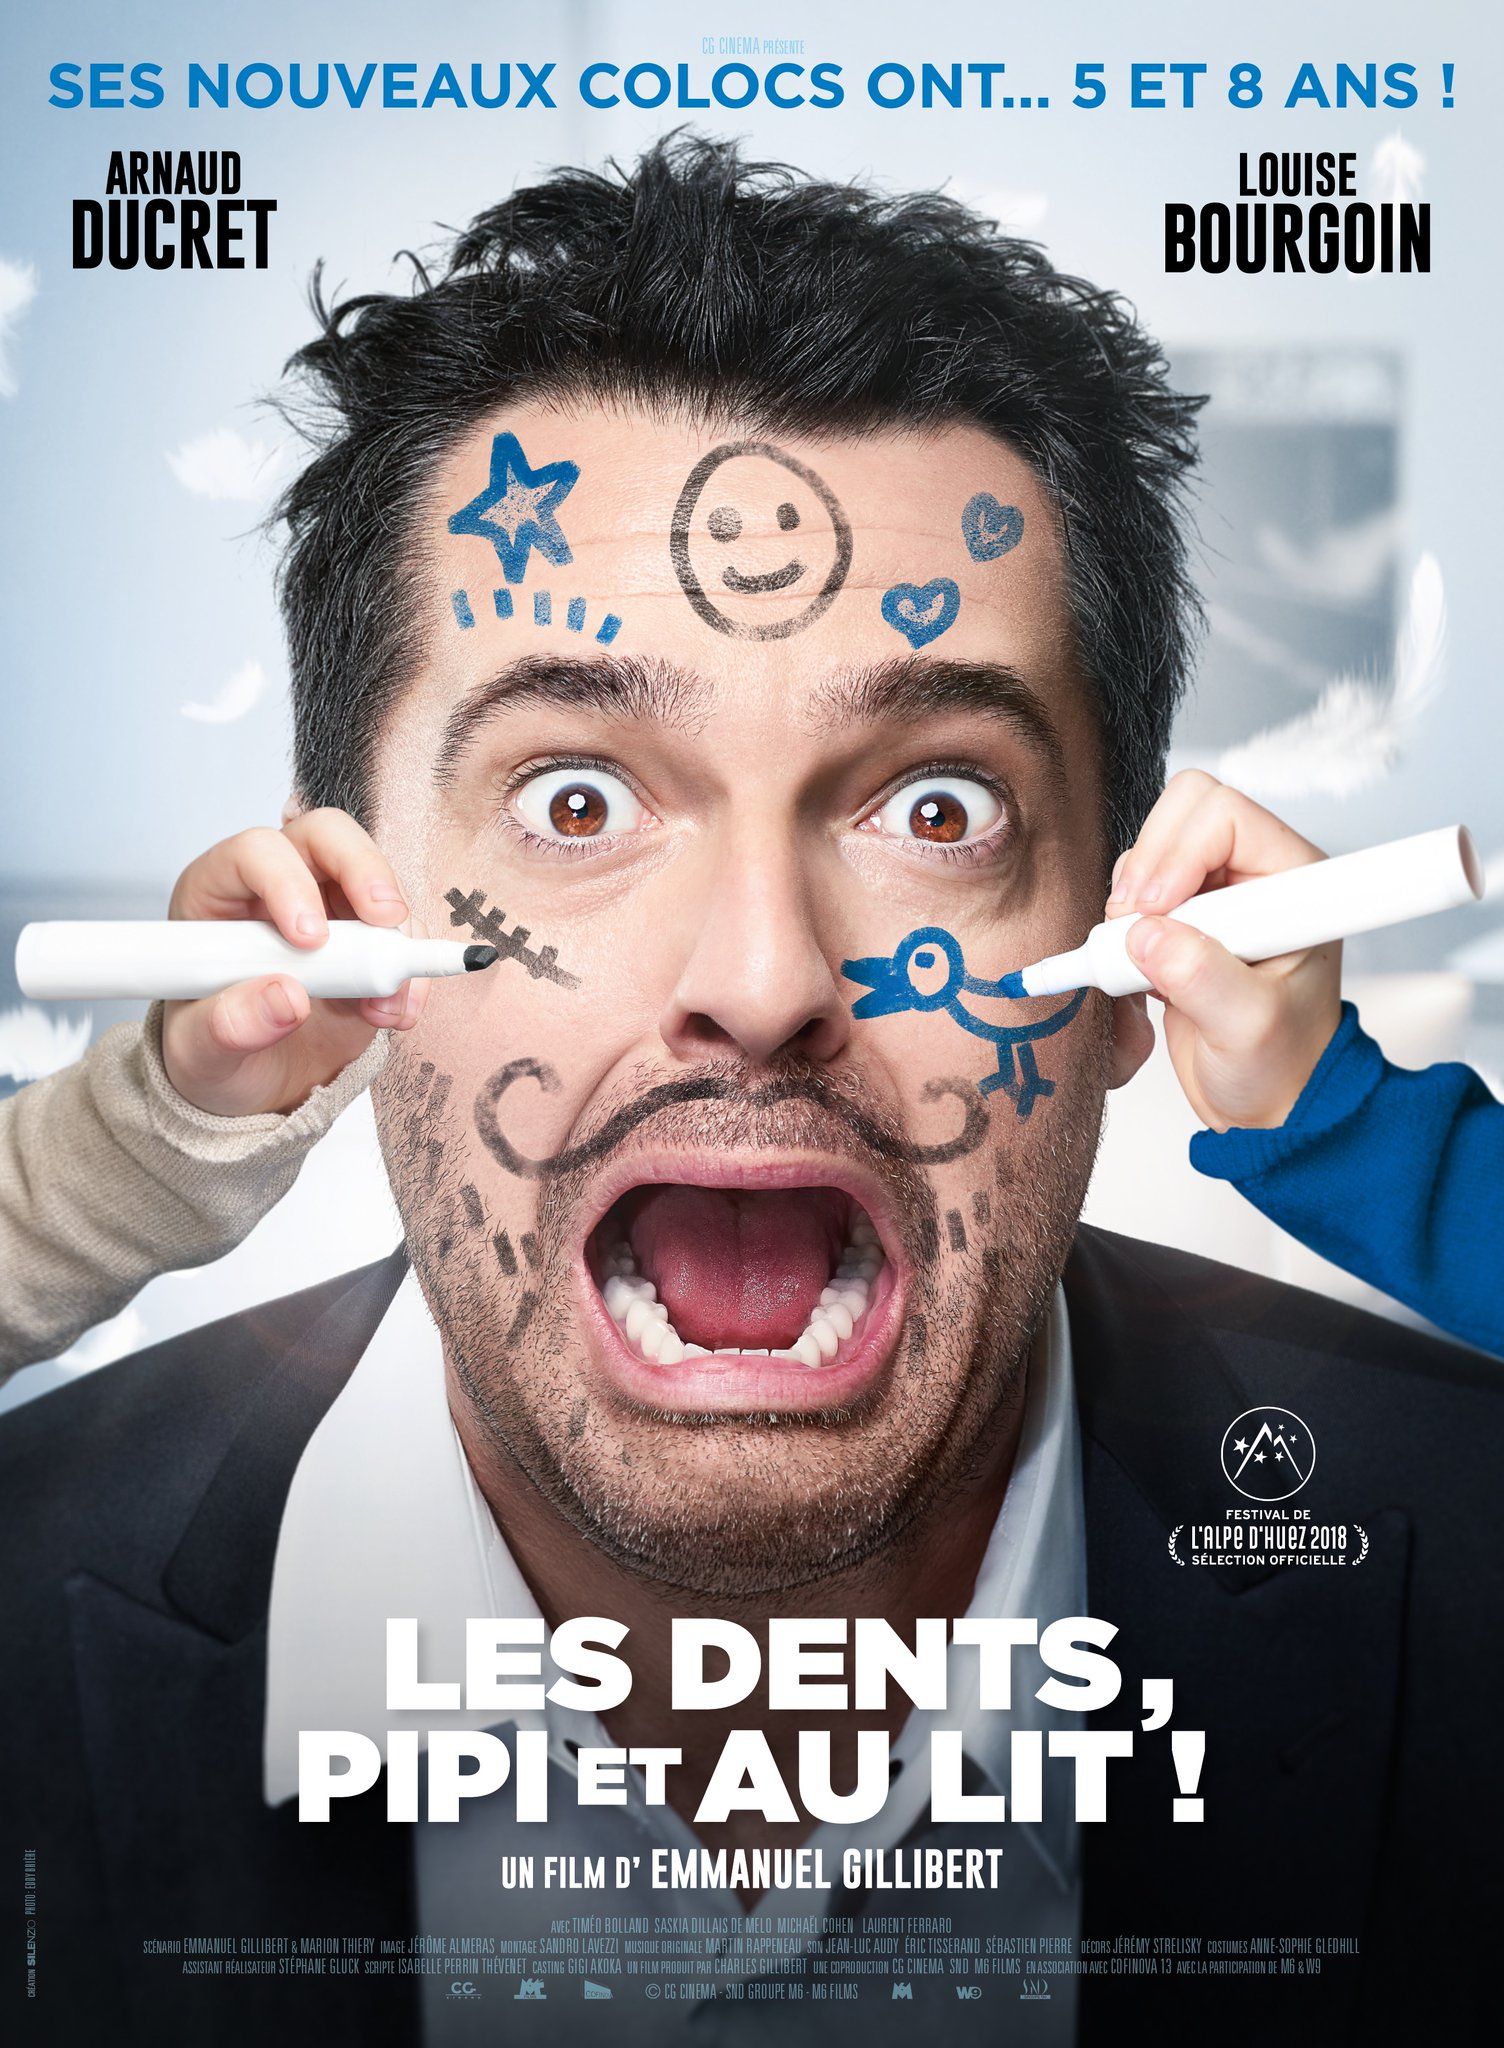 Les dents, pipi et au lit streaming